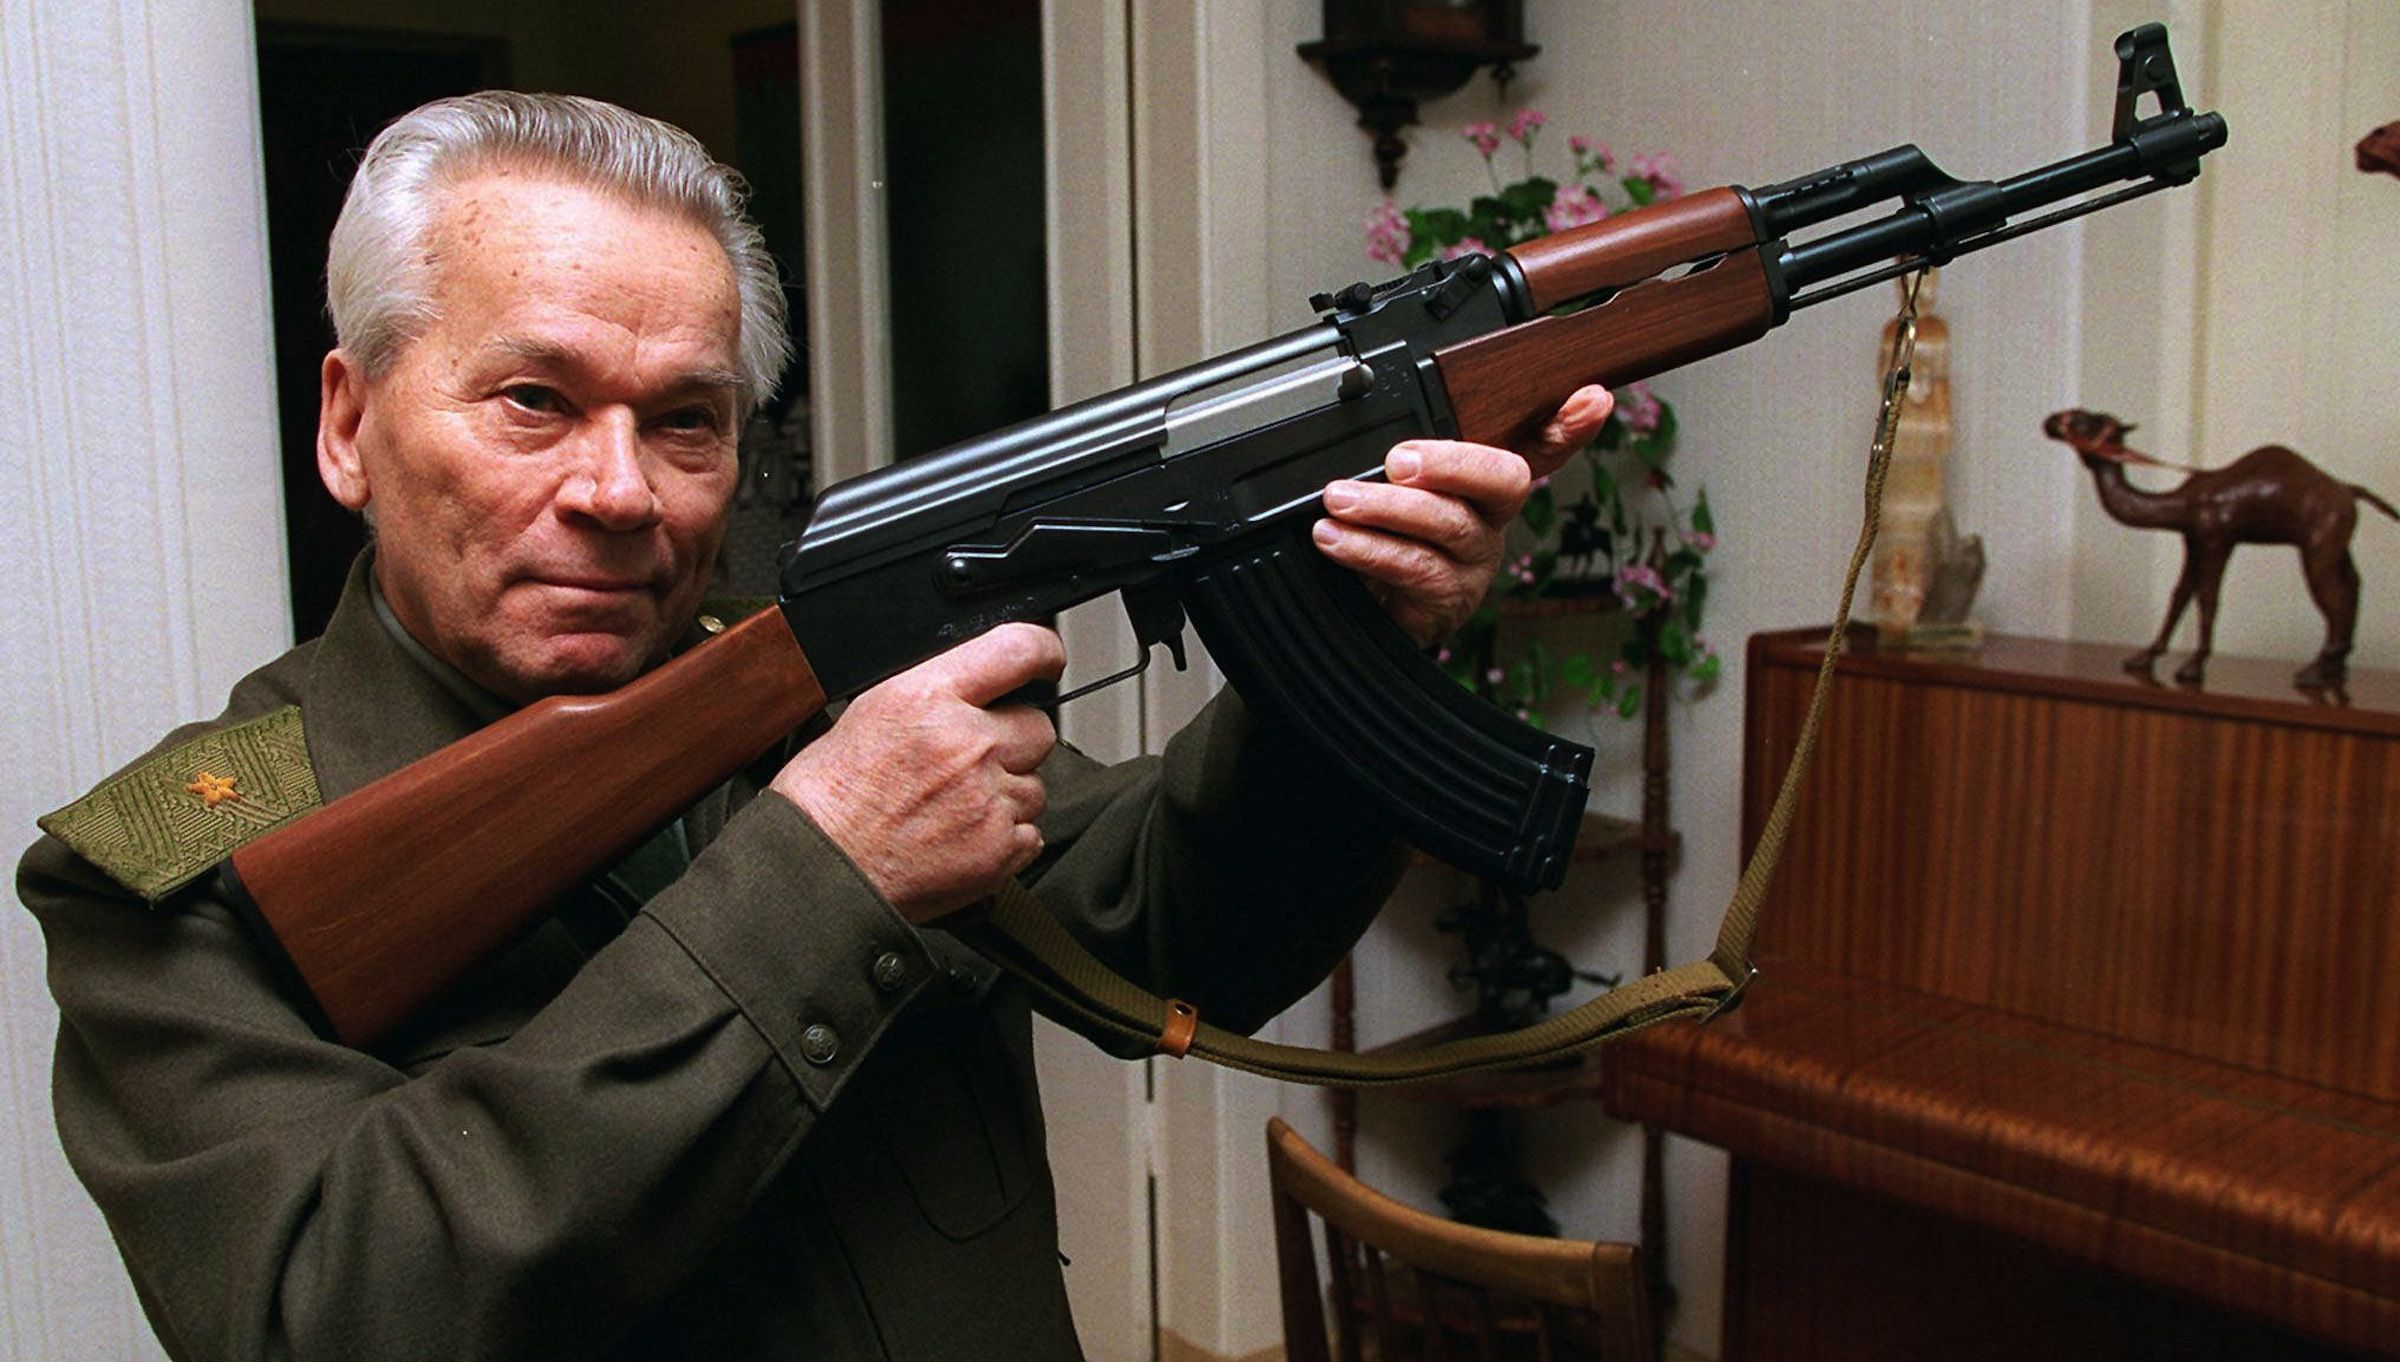 FILE- In this Wednesday, Oct. 29, 1997 file photo Mikhail Kalashnikov shows a model of his world-famous AK-47 assault rifle at home in the Ural Mountain city of Izhevsk, 1000 km (625 miles) east of Moscow, Russia. Kalashnikov, whose work as a weapons designer for the Soviet Union is immortalized in the name of the world's most popular firearm, died Monday at the age of 94 in a hospital of the city of Izhevsk where he lived. The AK-47 has been favored by guerrillas, terrorists and the soldiers of many armies. An estimated 100 million guns are spread worldwide.  (AP Photo/Vladimir Vyatkin, File)